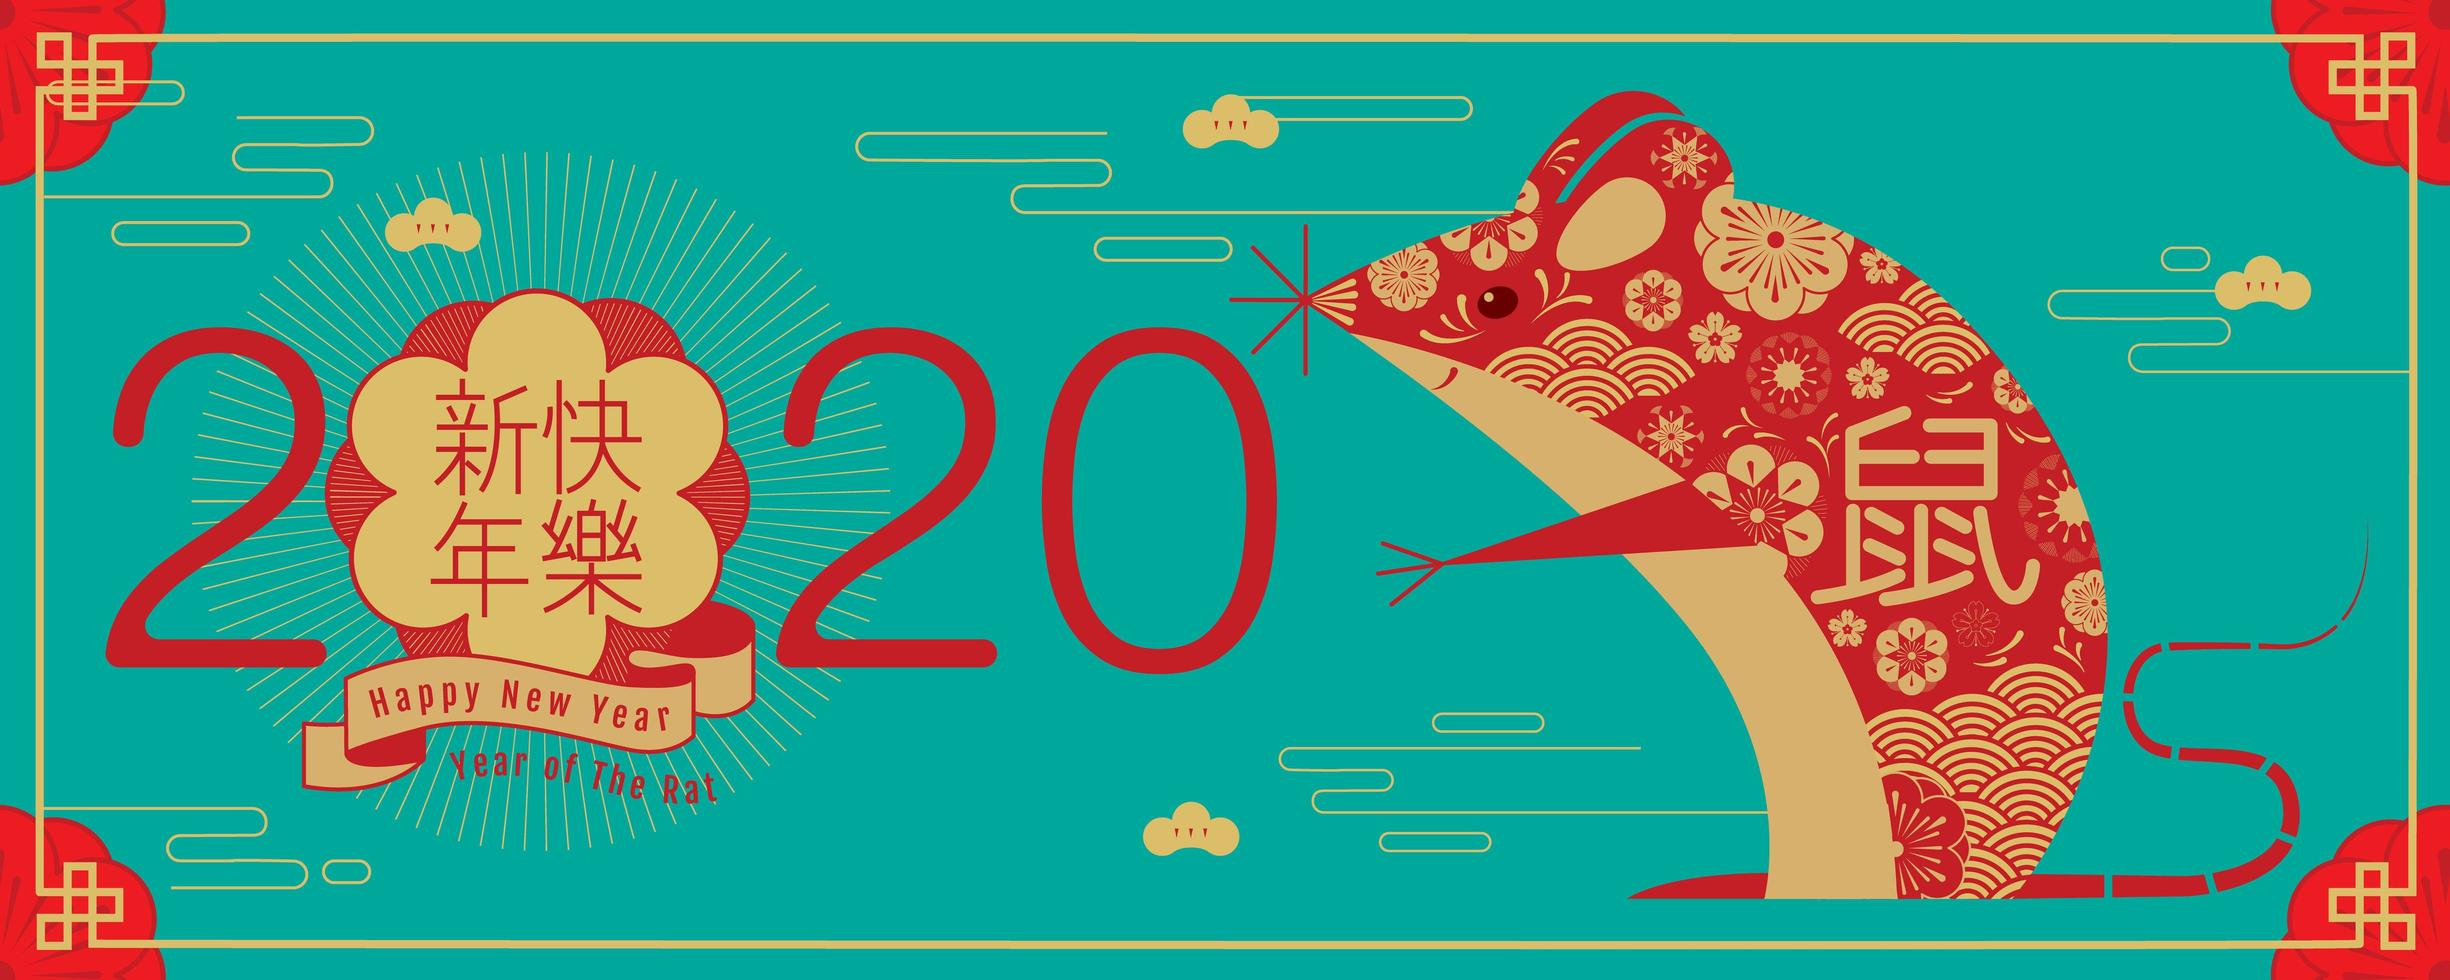 Chinese New Year 2020 Patterned Rat Banner vector